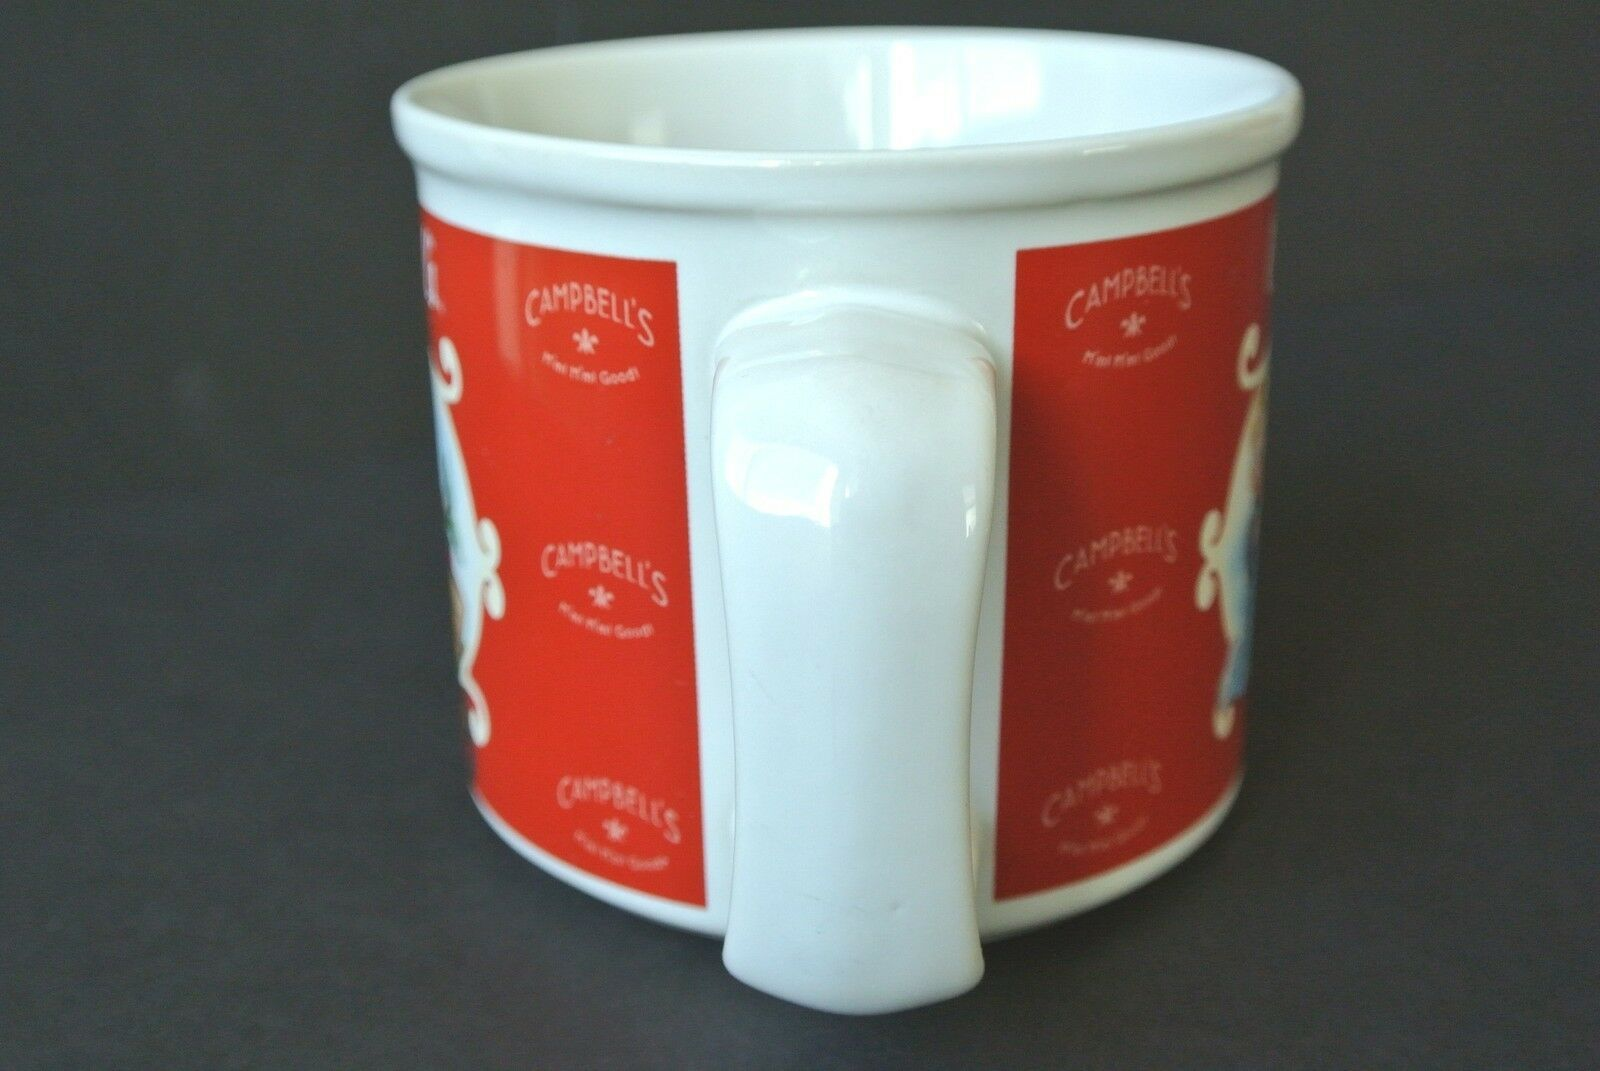 2002 Campbell's Kids Tomatoes Garden Soup Bowl Cup Mug 31981 Houston Harvest